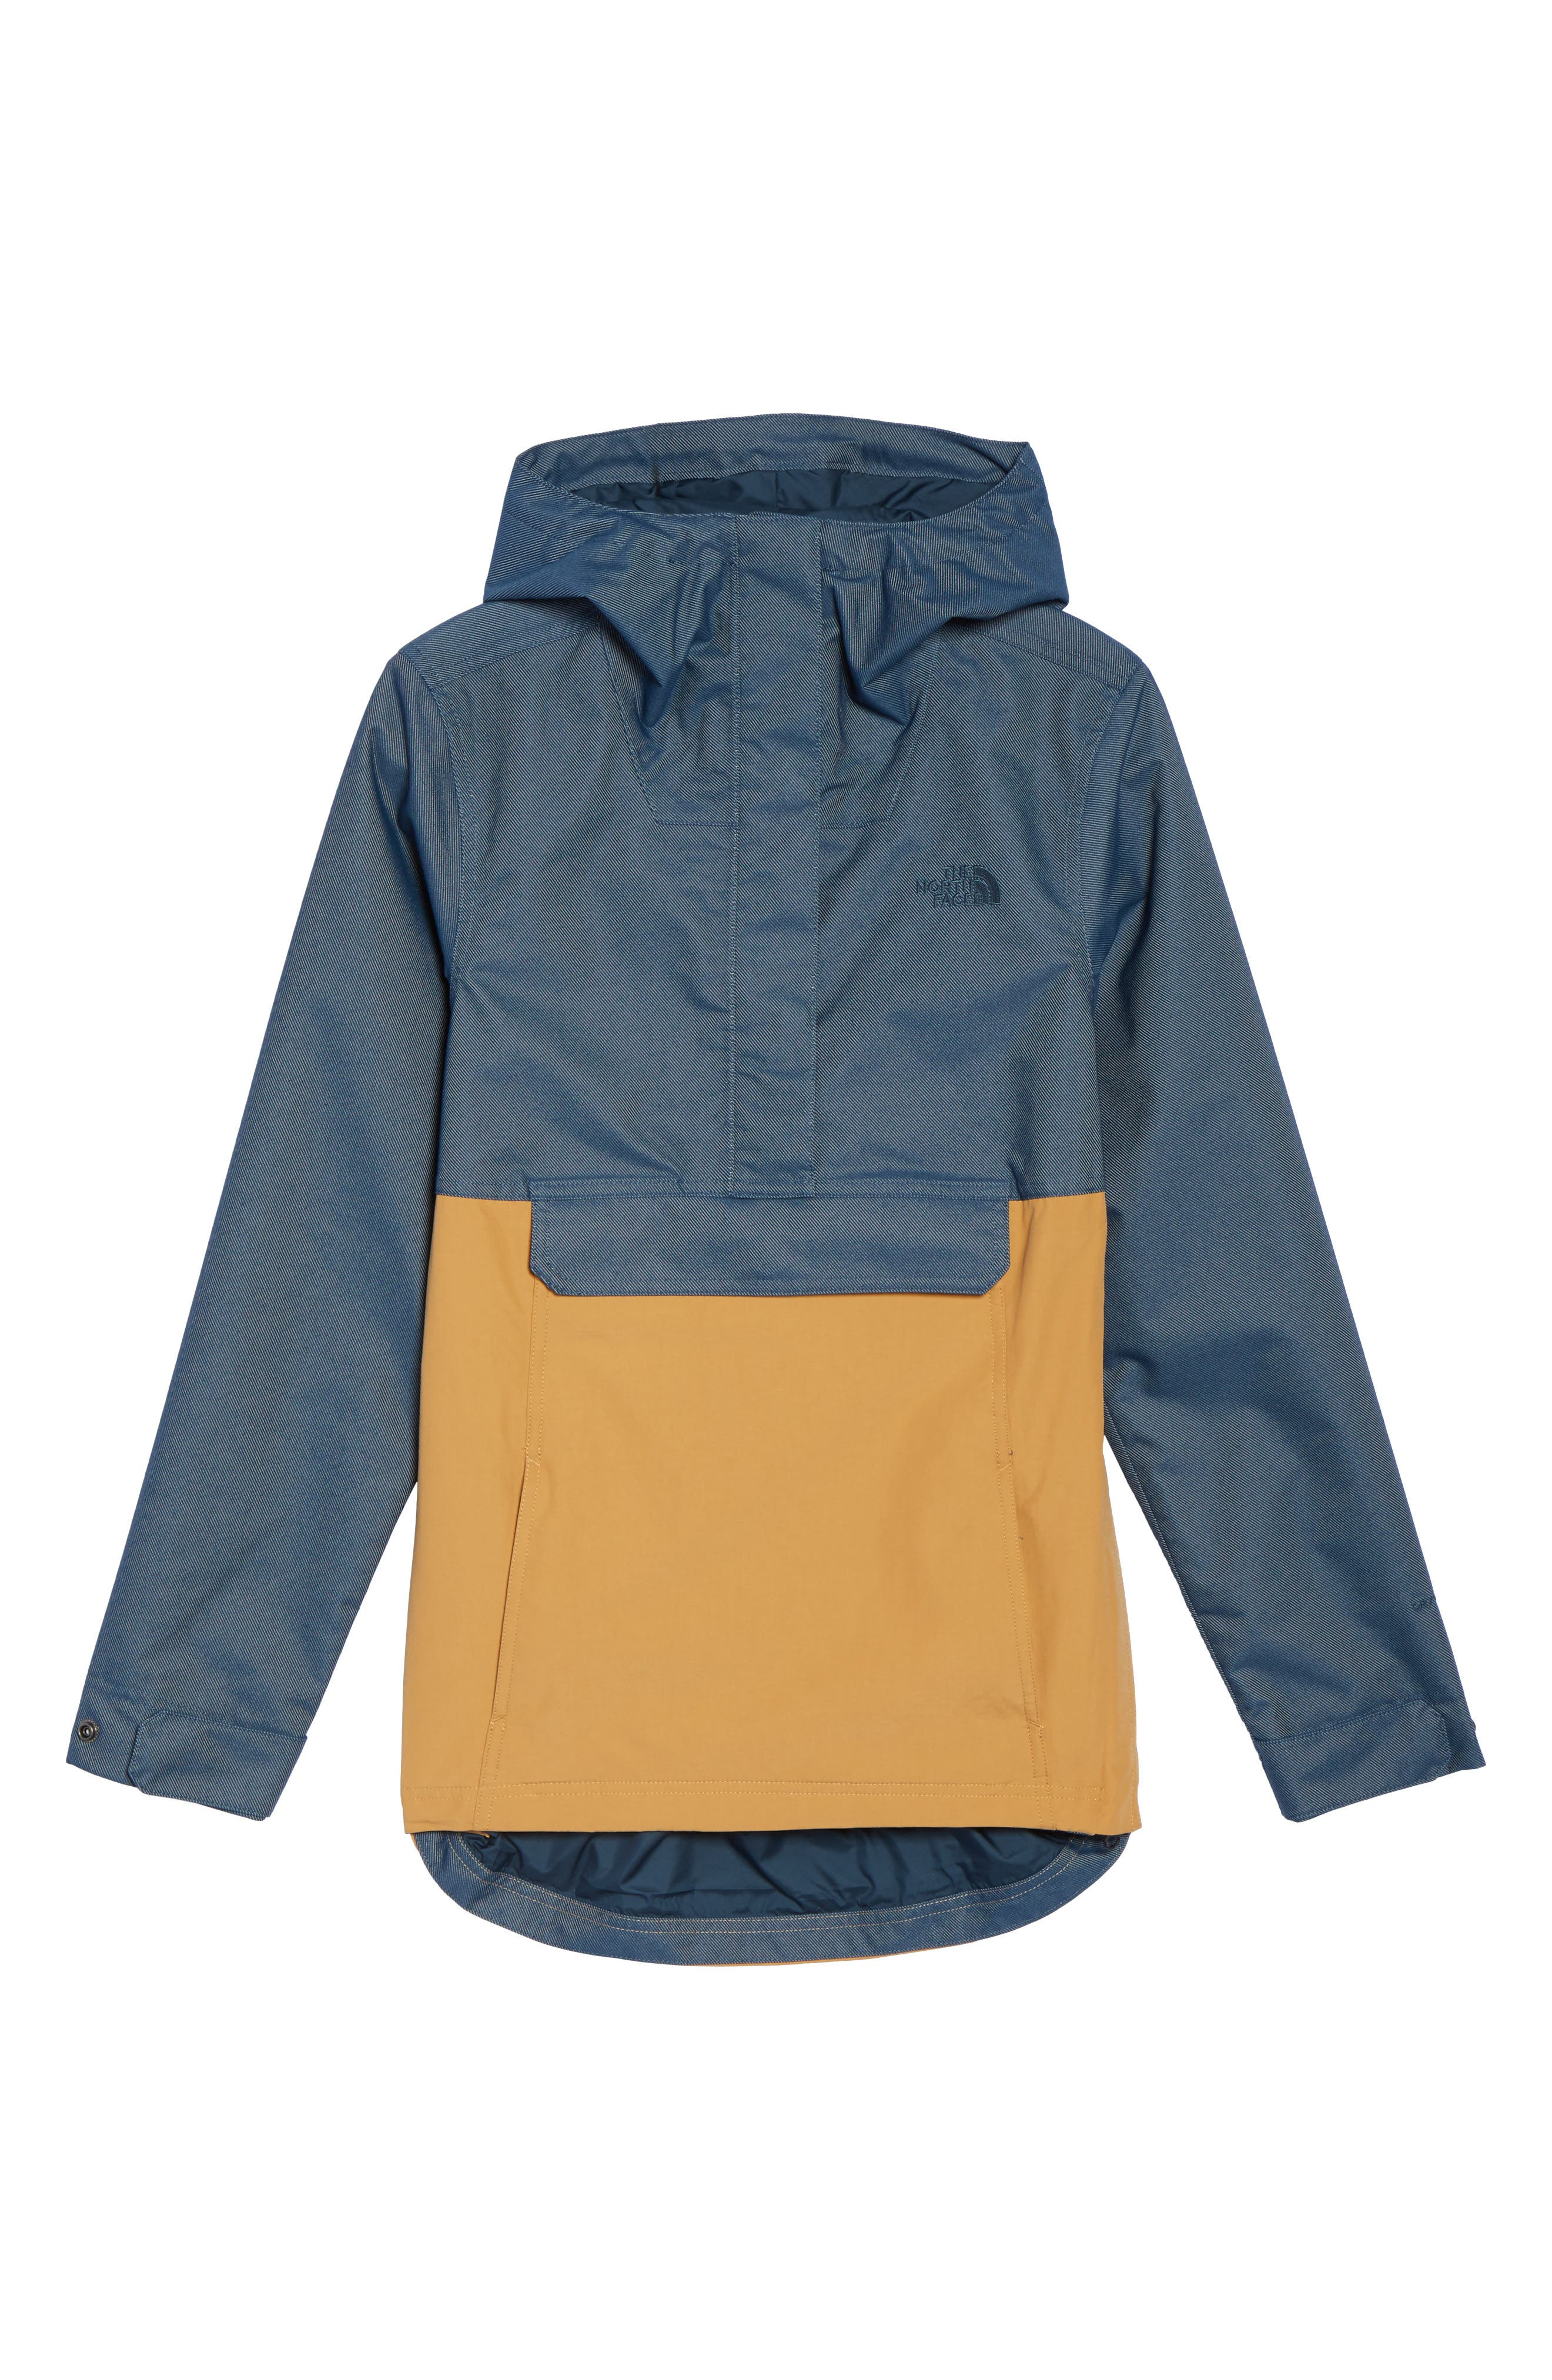 Cadet Anorak Rain Jacket,                             Alternate thumbnail 6, color,                             Biscuit Tan Ink Blue